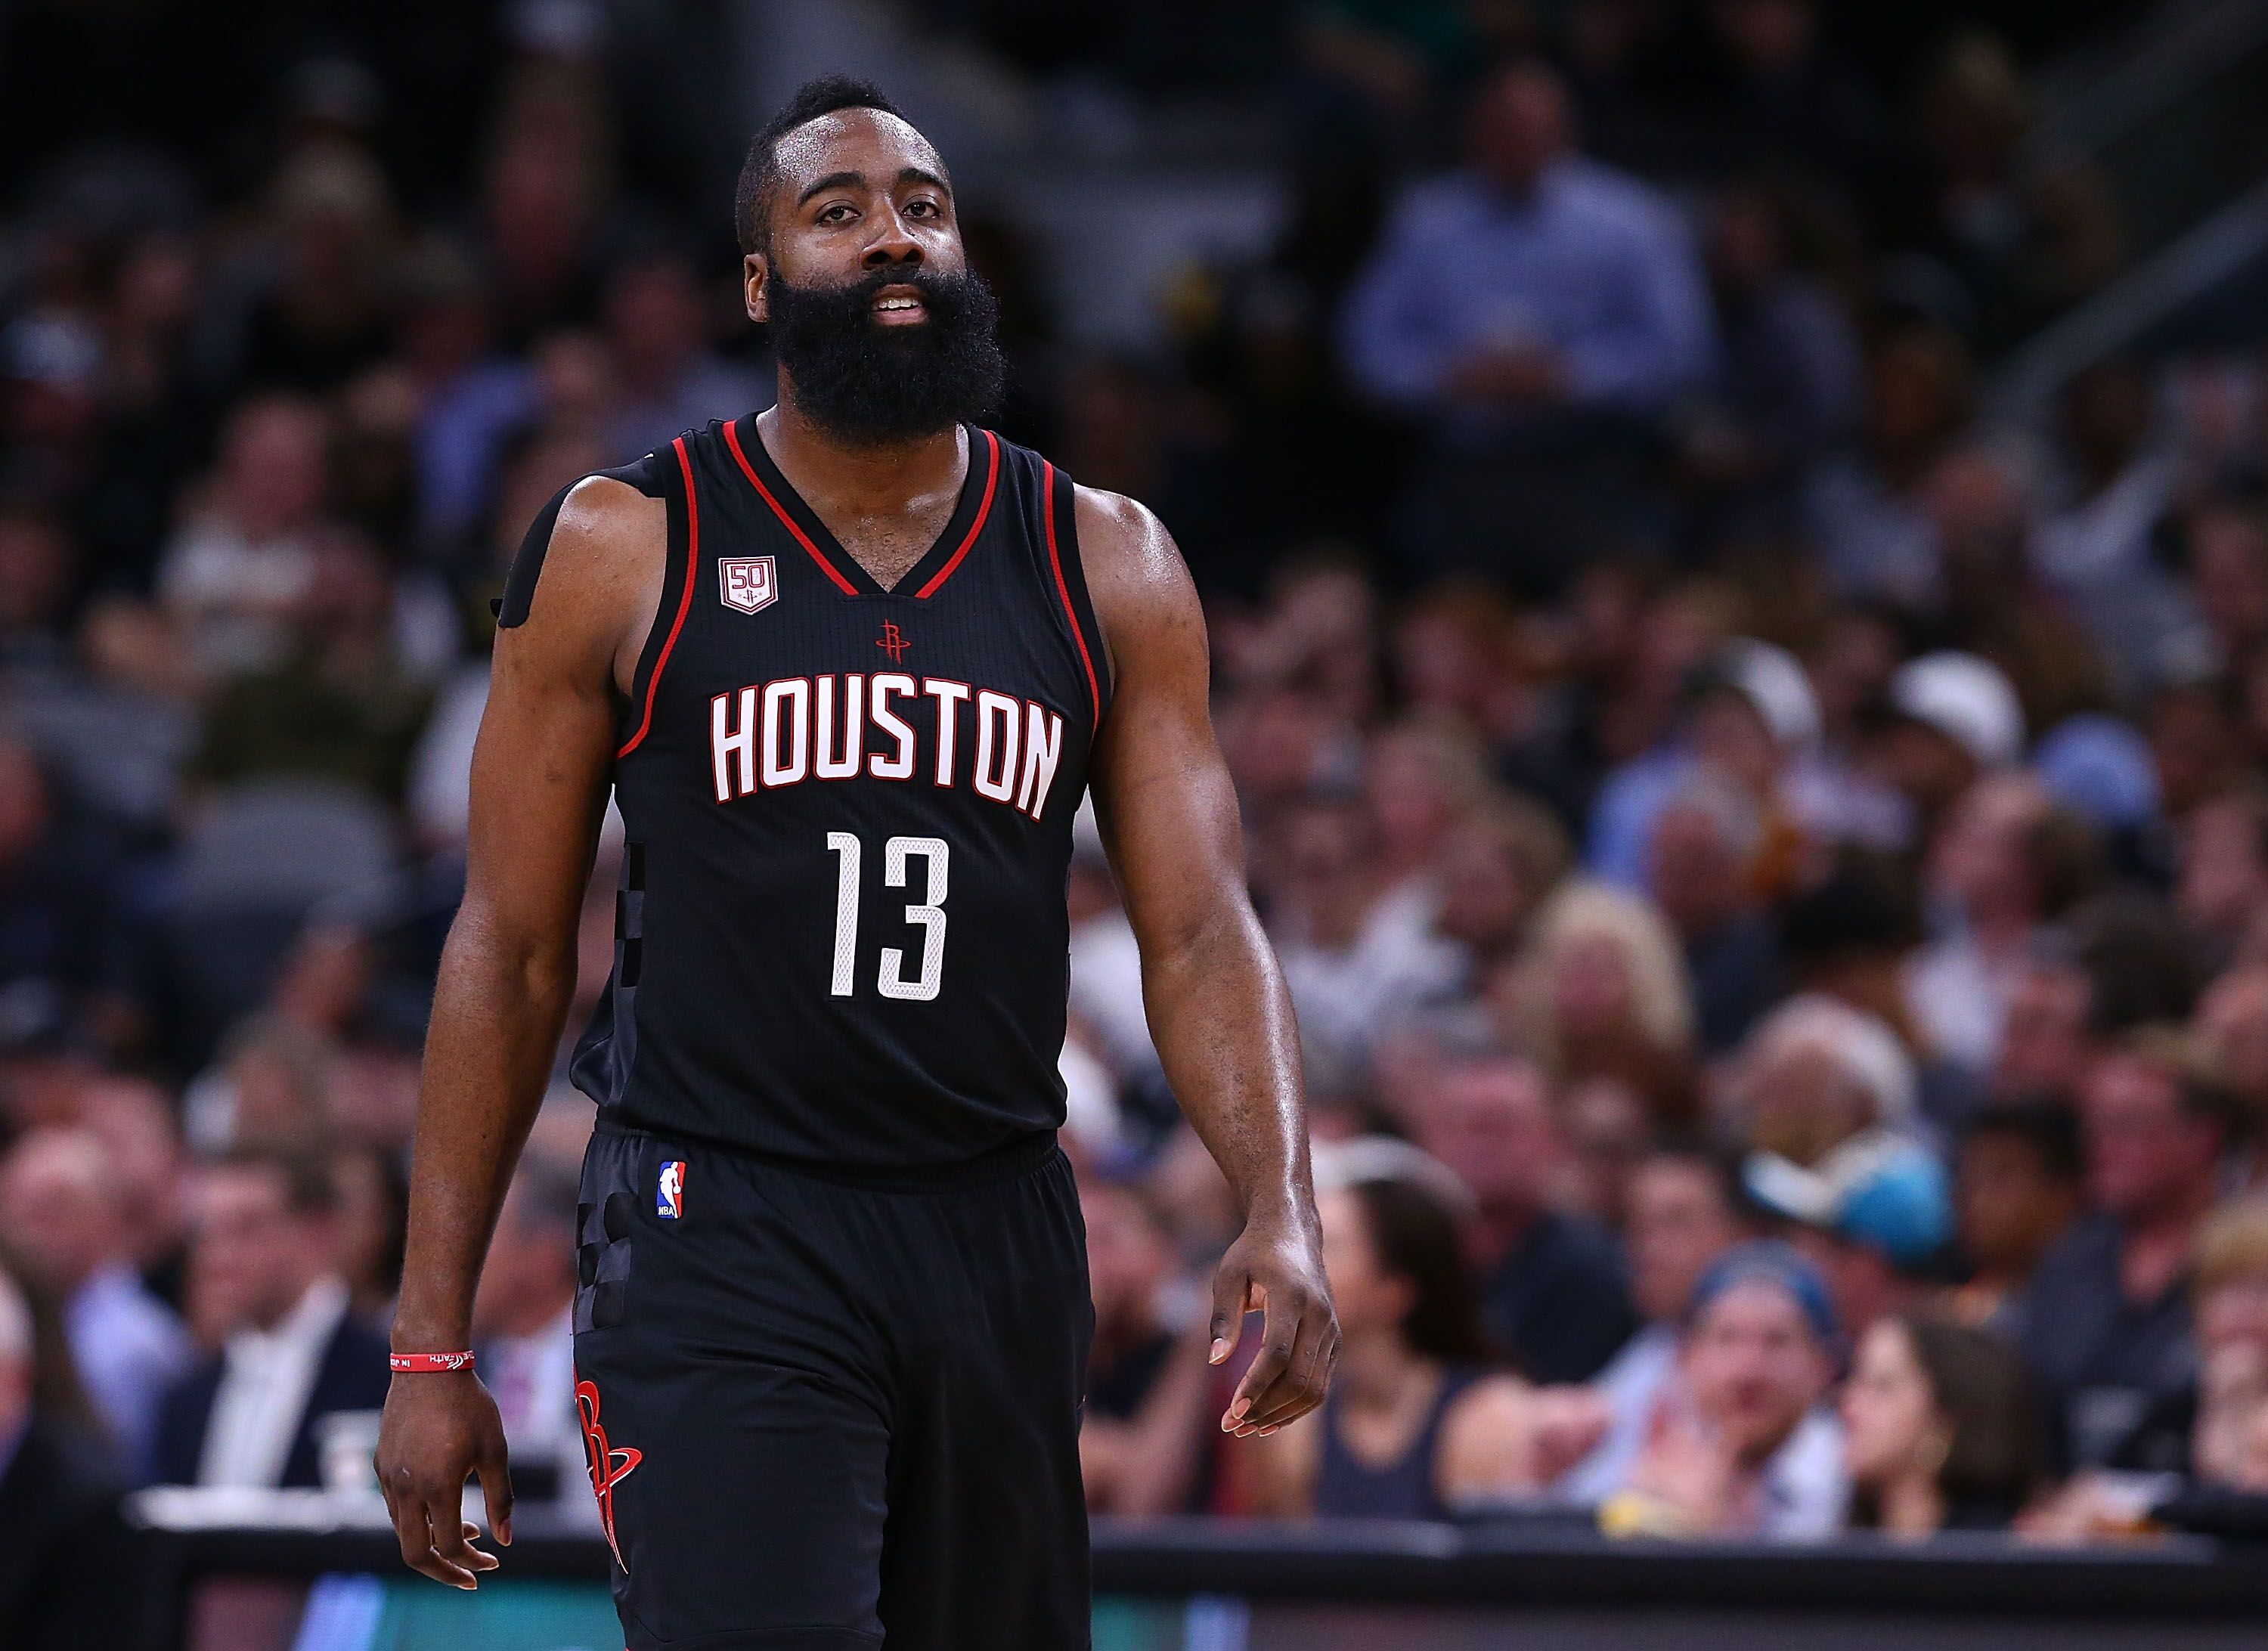 new style 6f956 f9f86 Houston Rockets: Why team may need to wait until 2018 to compete